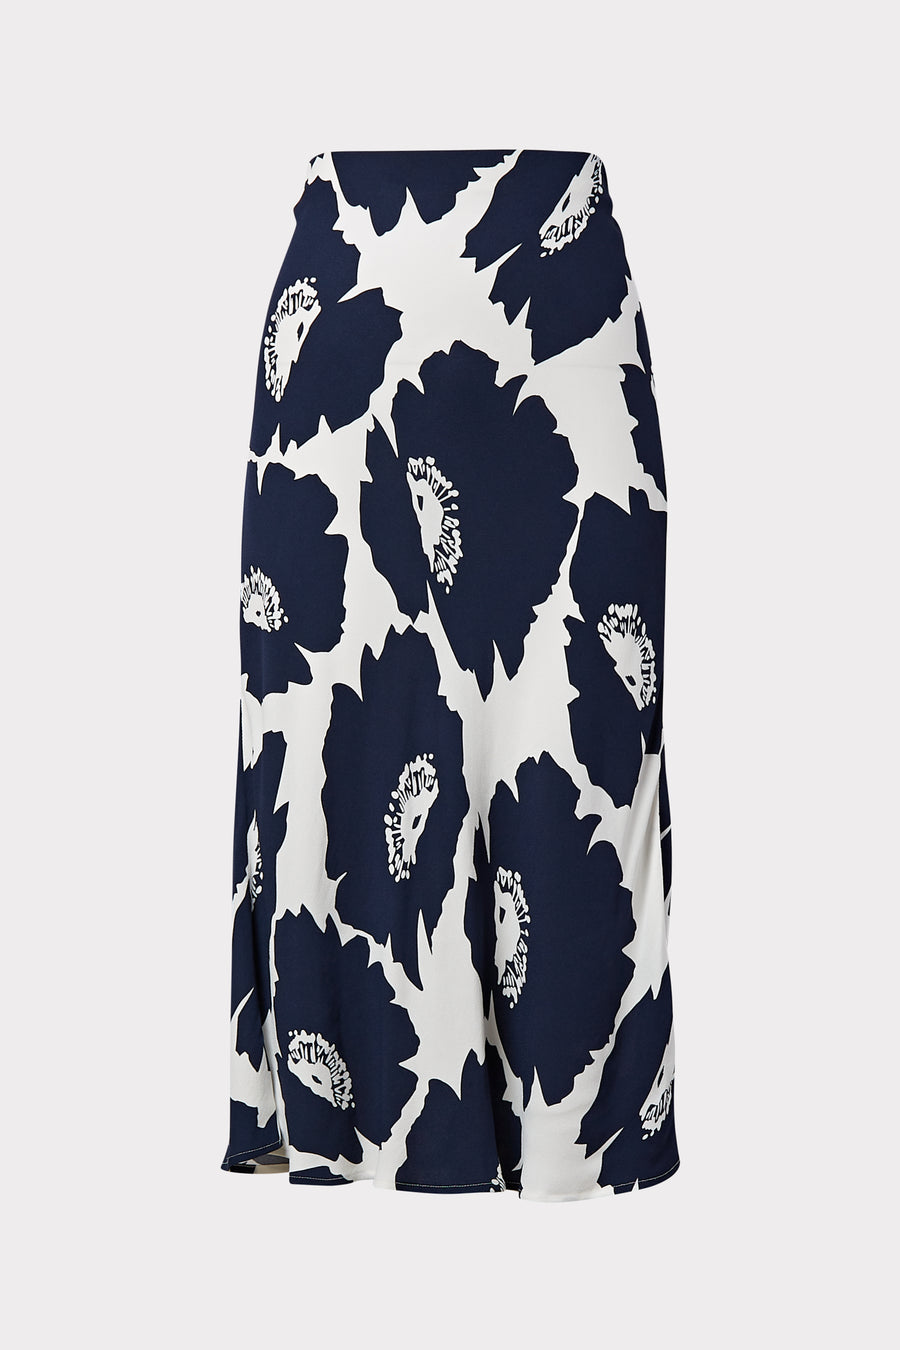 Bias Poppy Floral Viscose Skirt